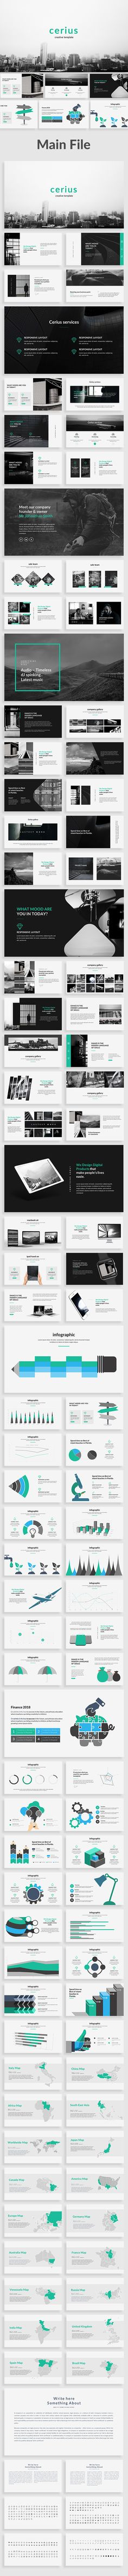 Cerius Creative Powerpoint Template - #Creative #PowerPoint #Templates Download here: https://graphicriver.net/item/cerius-creative-powerpoint-template/20142885?ref=alena994